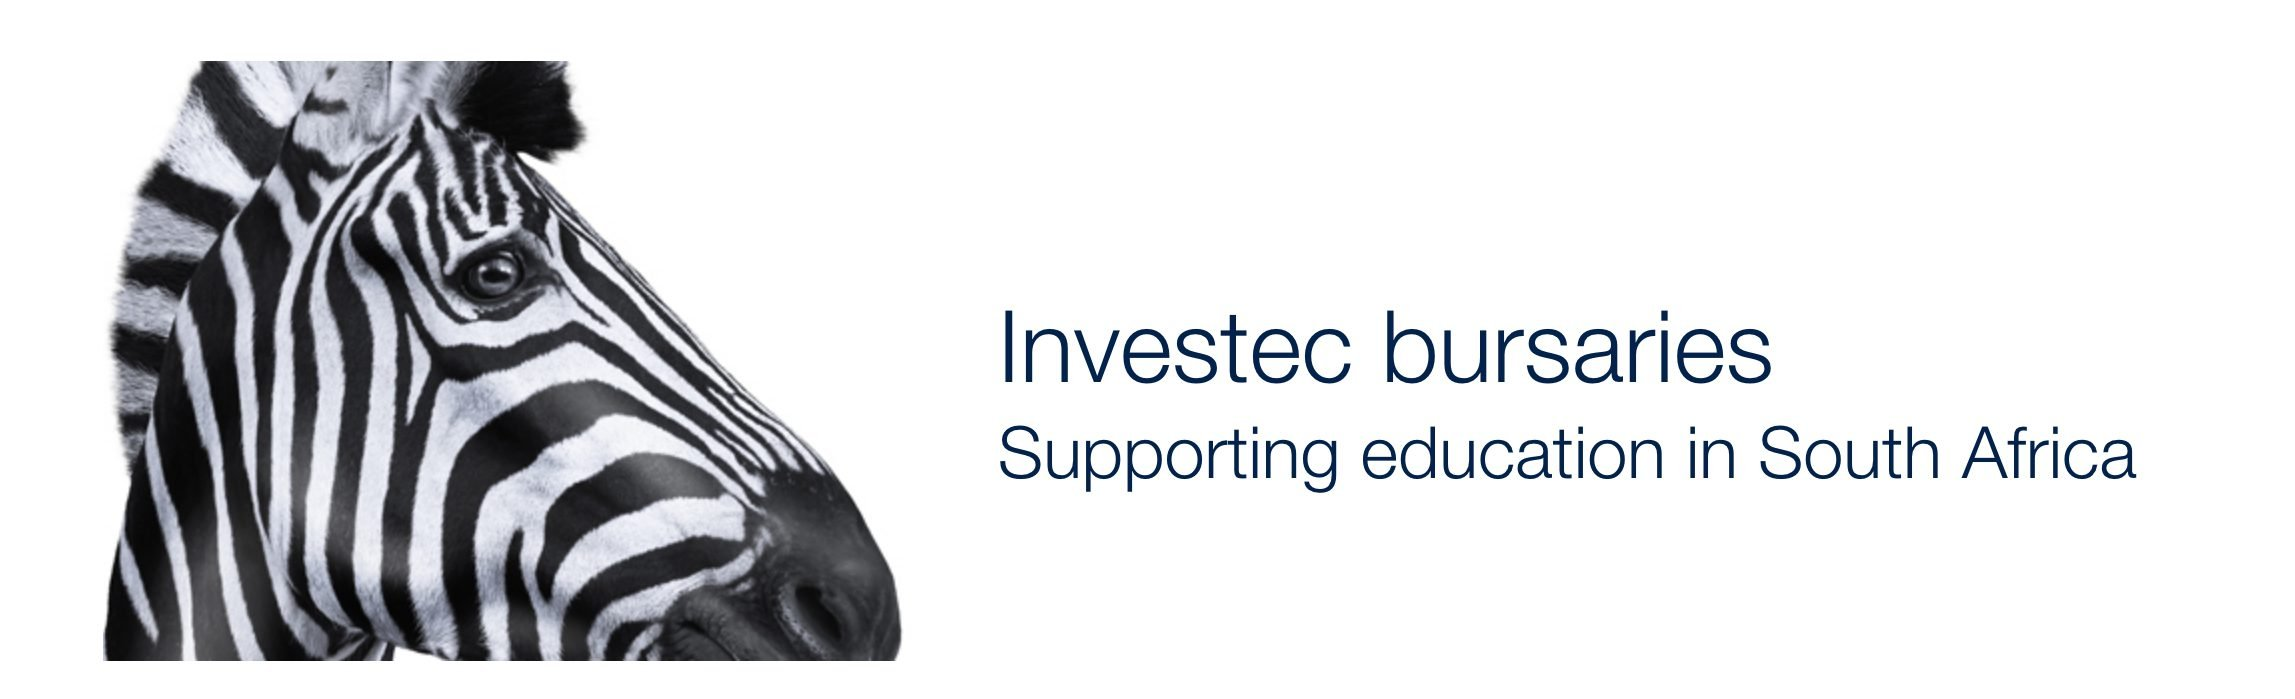 Investec Bursary Programmes 2019 for South Africans